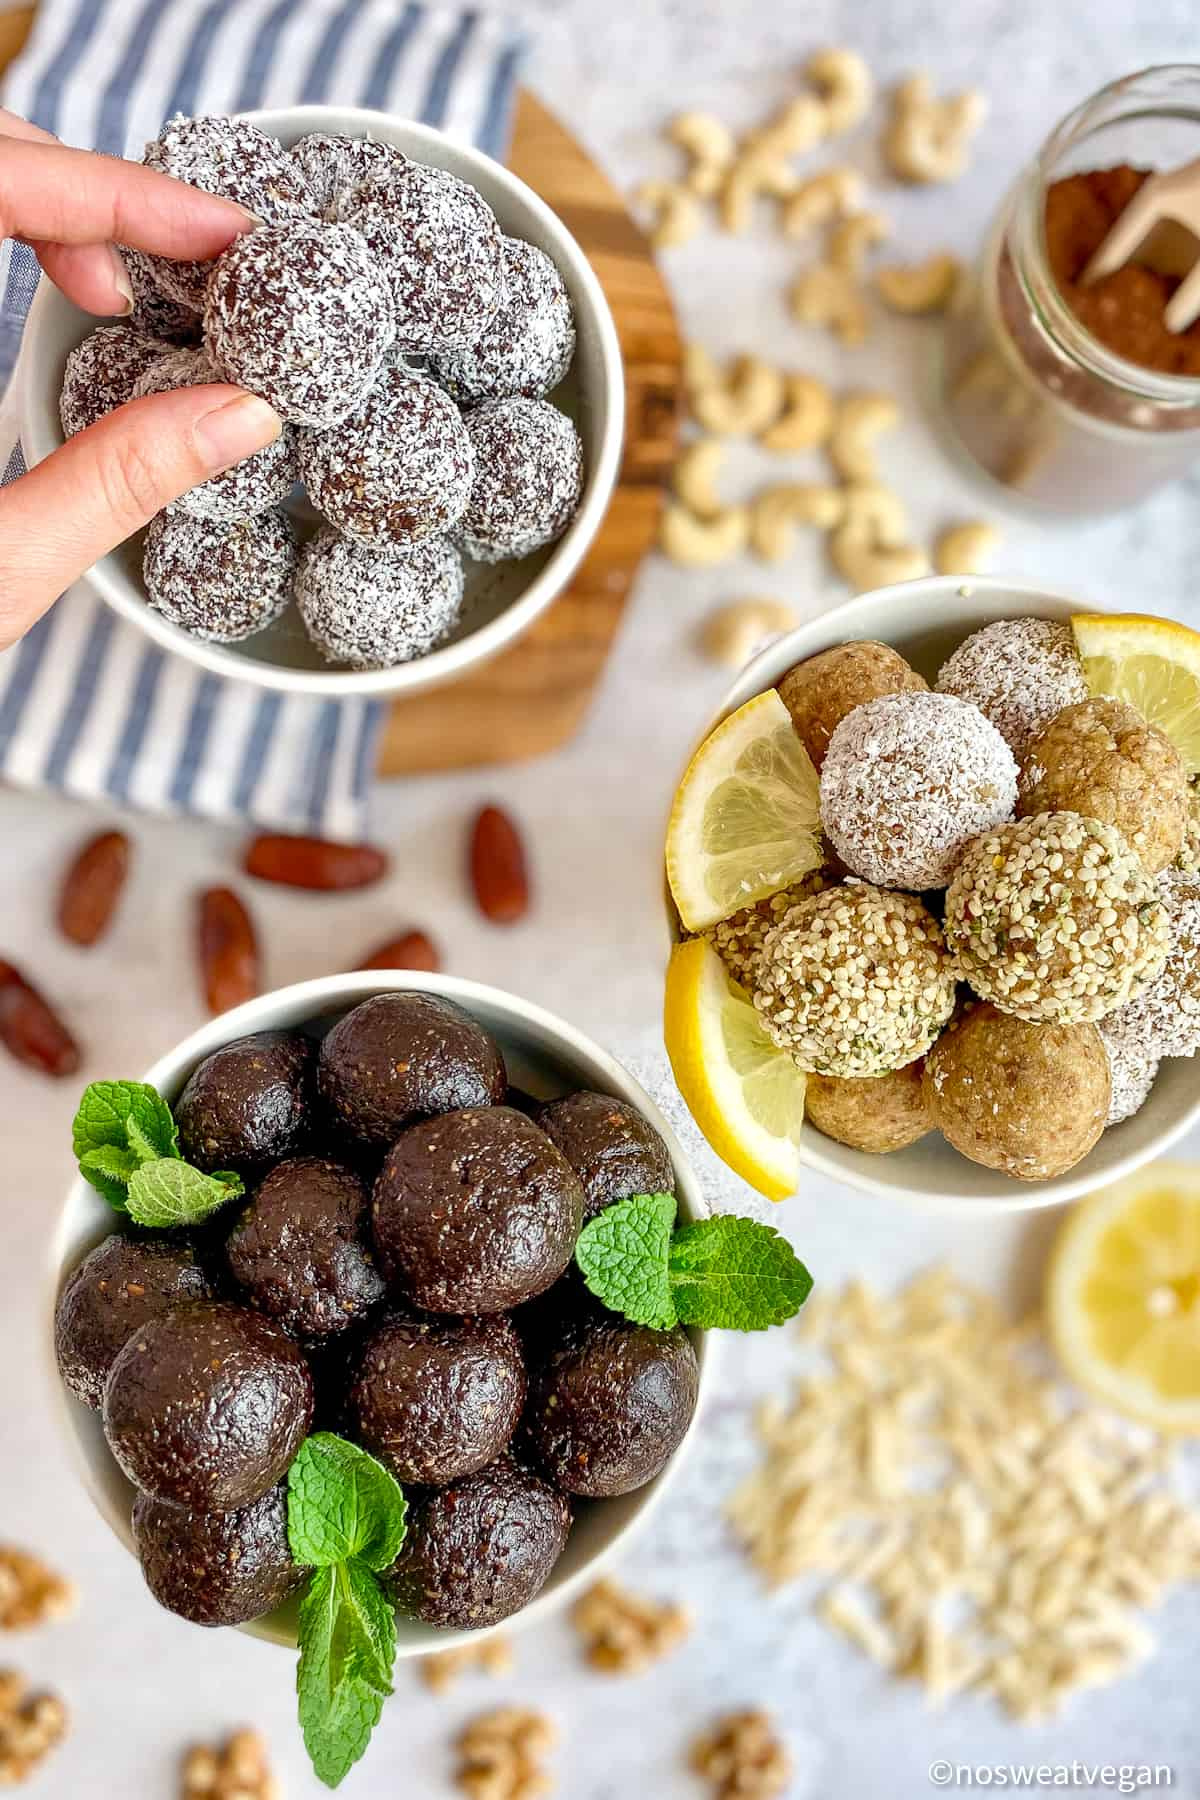 Bliss Balls: Three Girl-Scout Cookie flavors. (Thin Mint, Lemon, and Caramel Delight.)